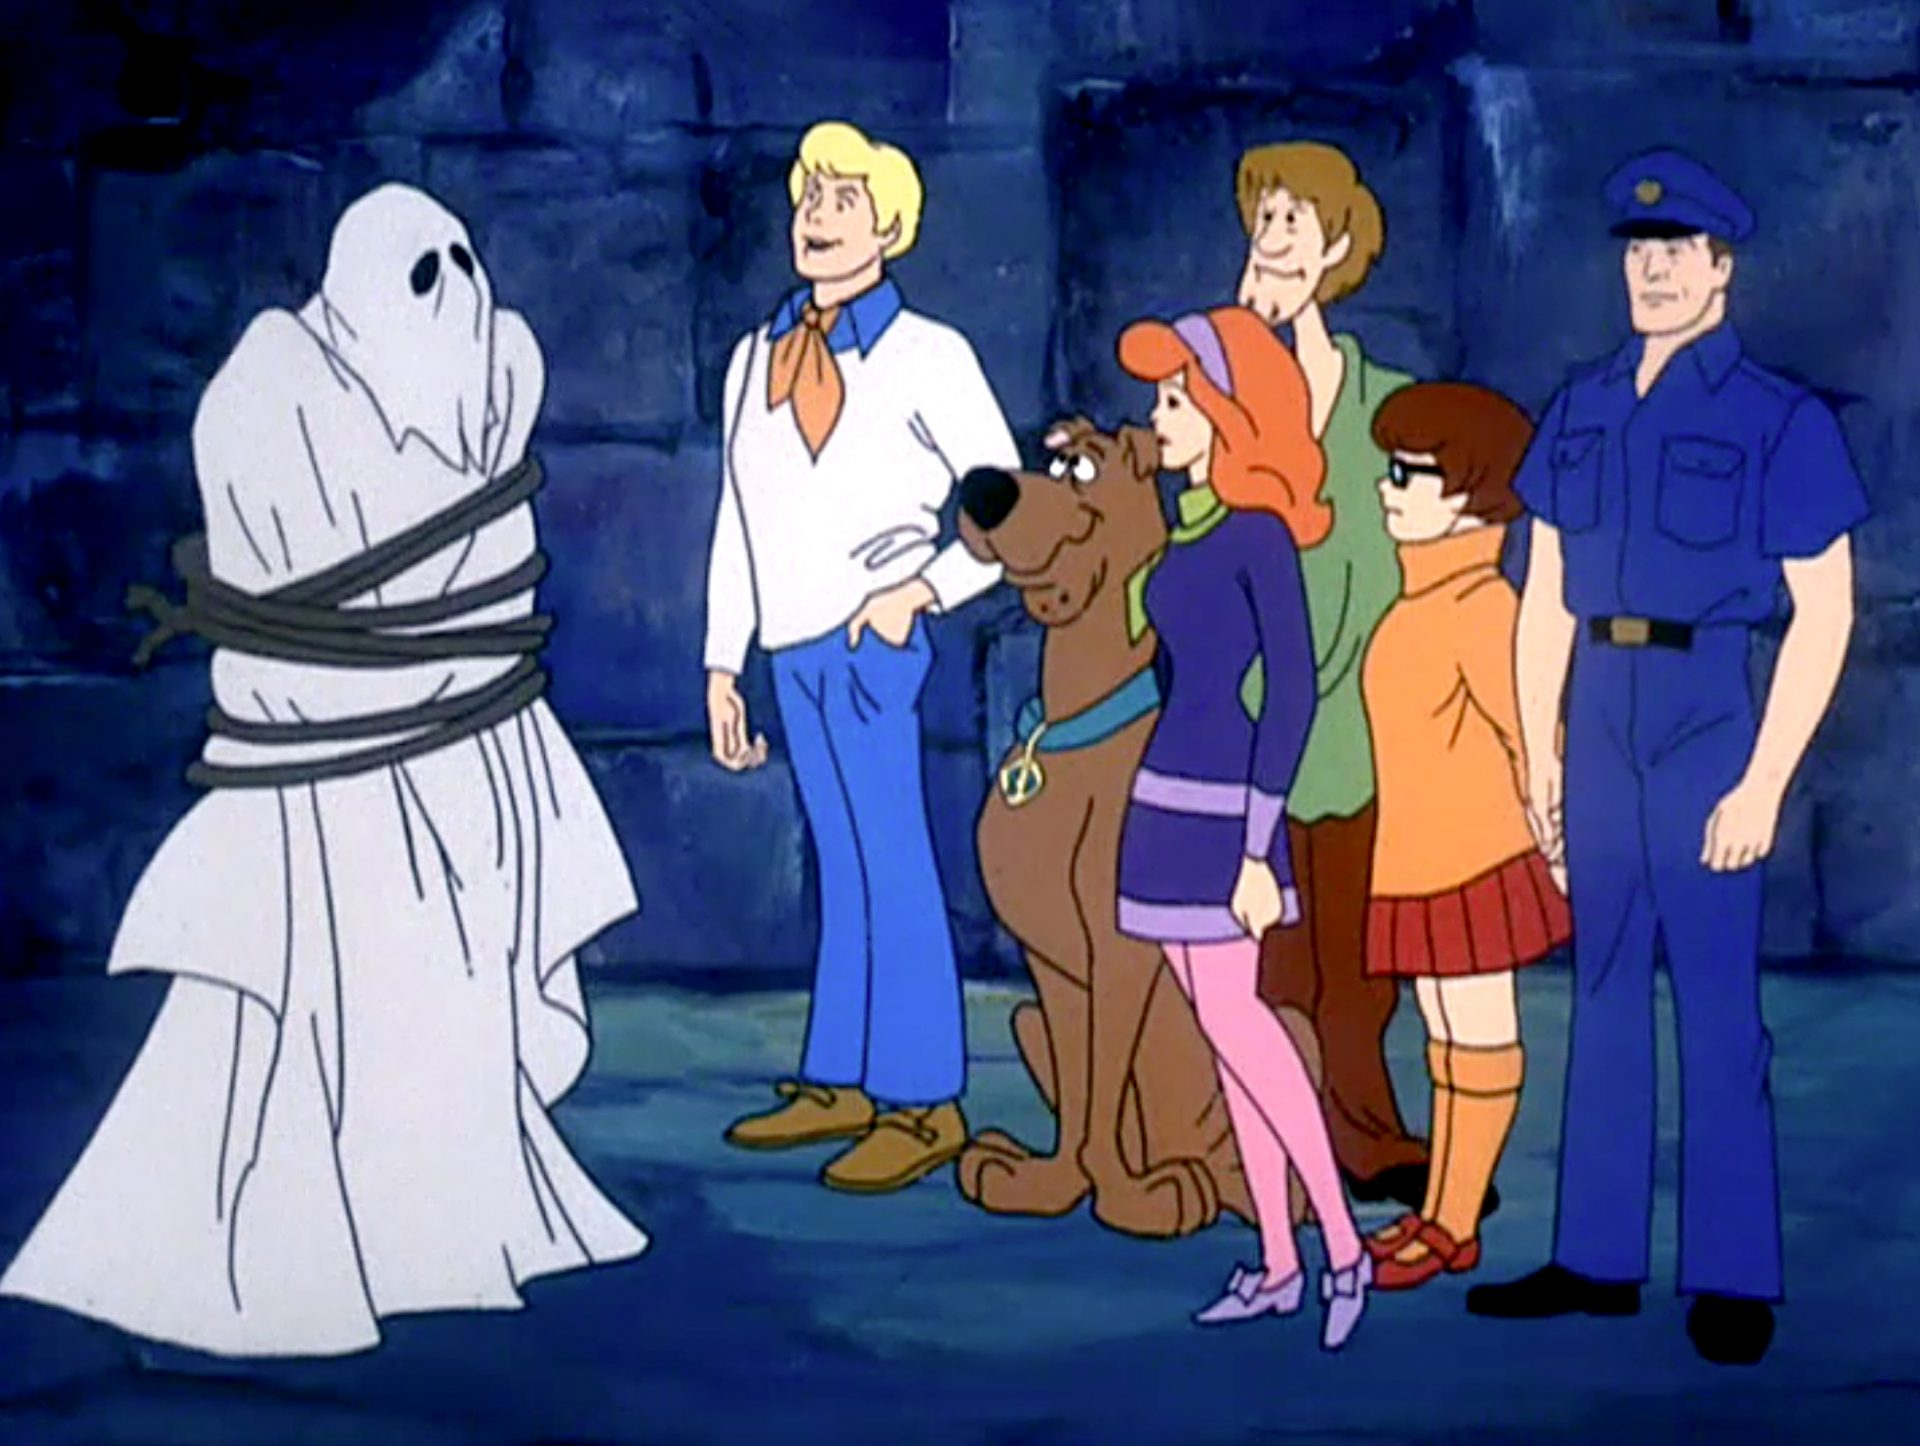 The Scooby gang unmask a ghost